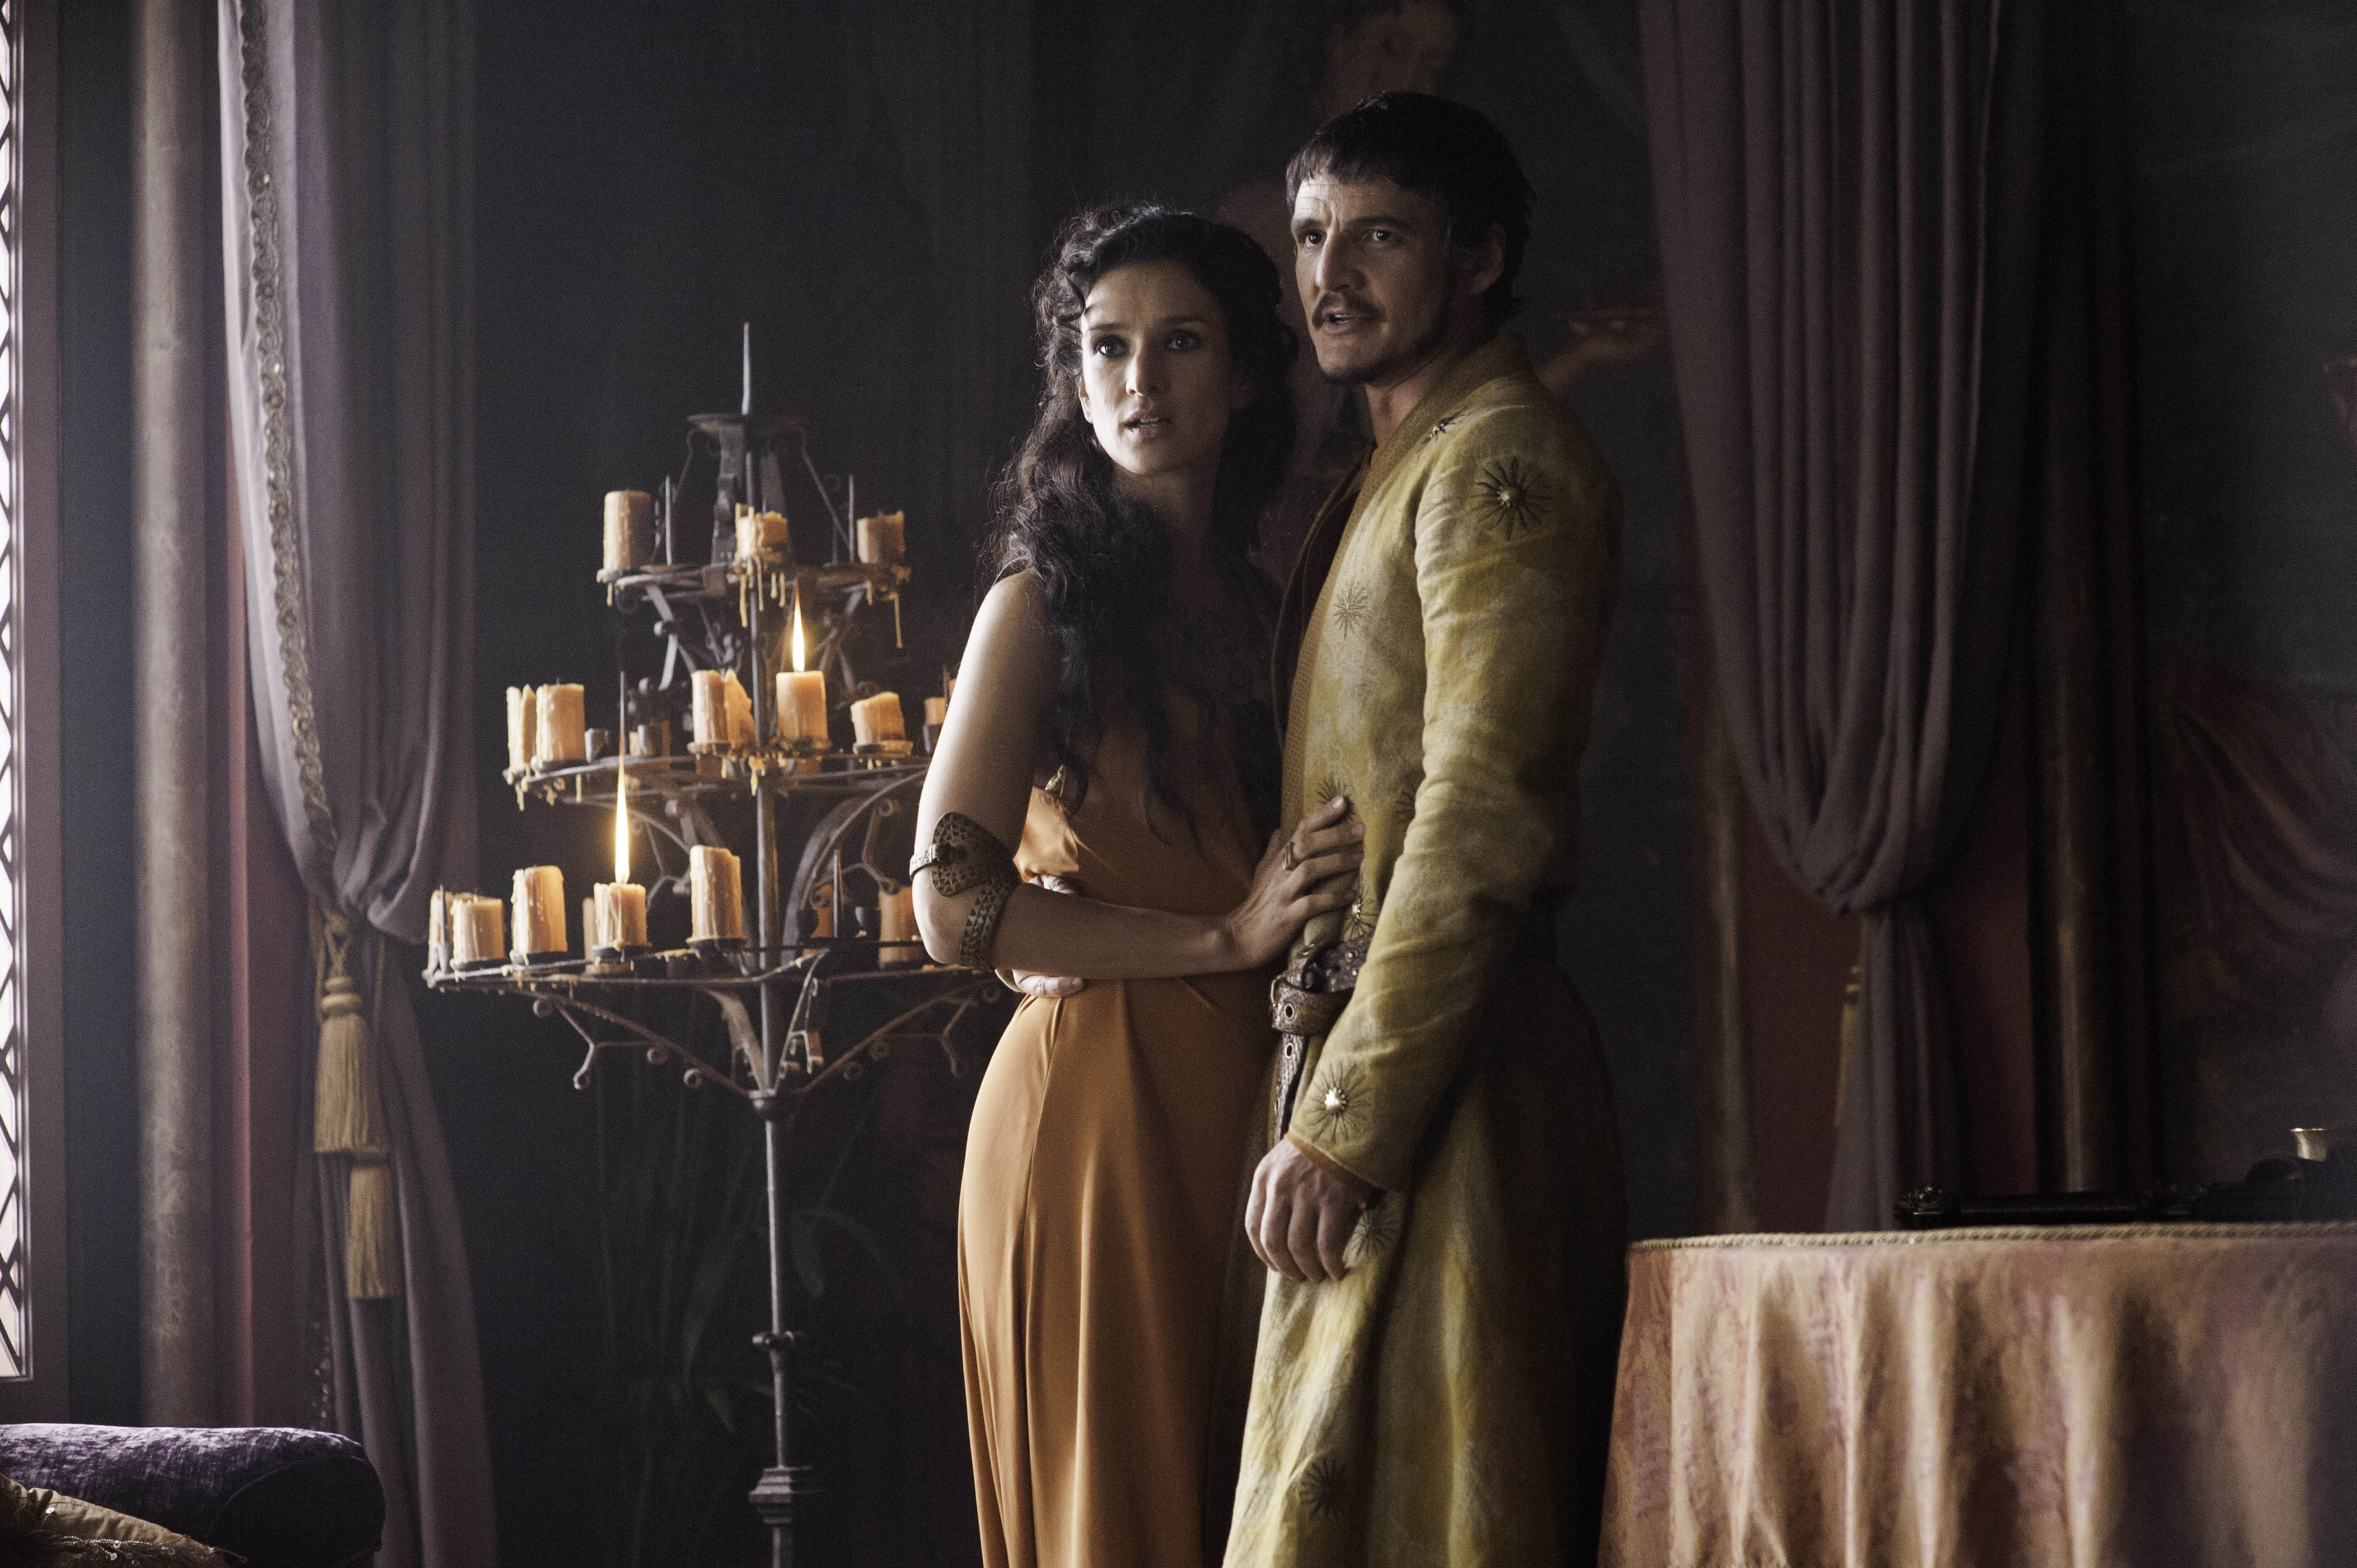 oberyn martell and ellaria sand game of thrones couples wallpaper 36914100 fanpop. Black Bedroom Furniture Sets. Home Design Ideas